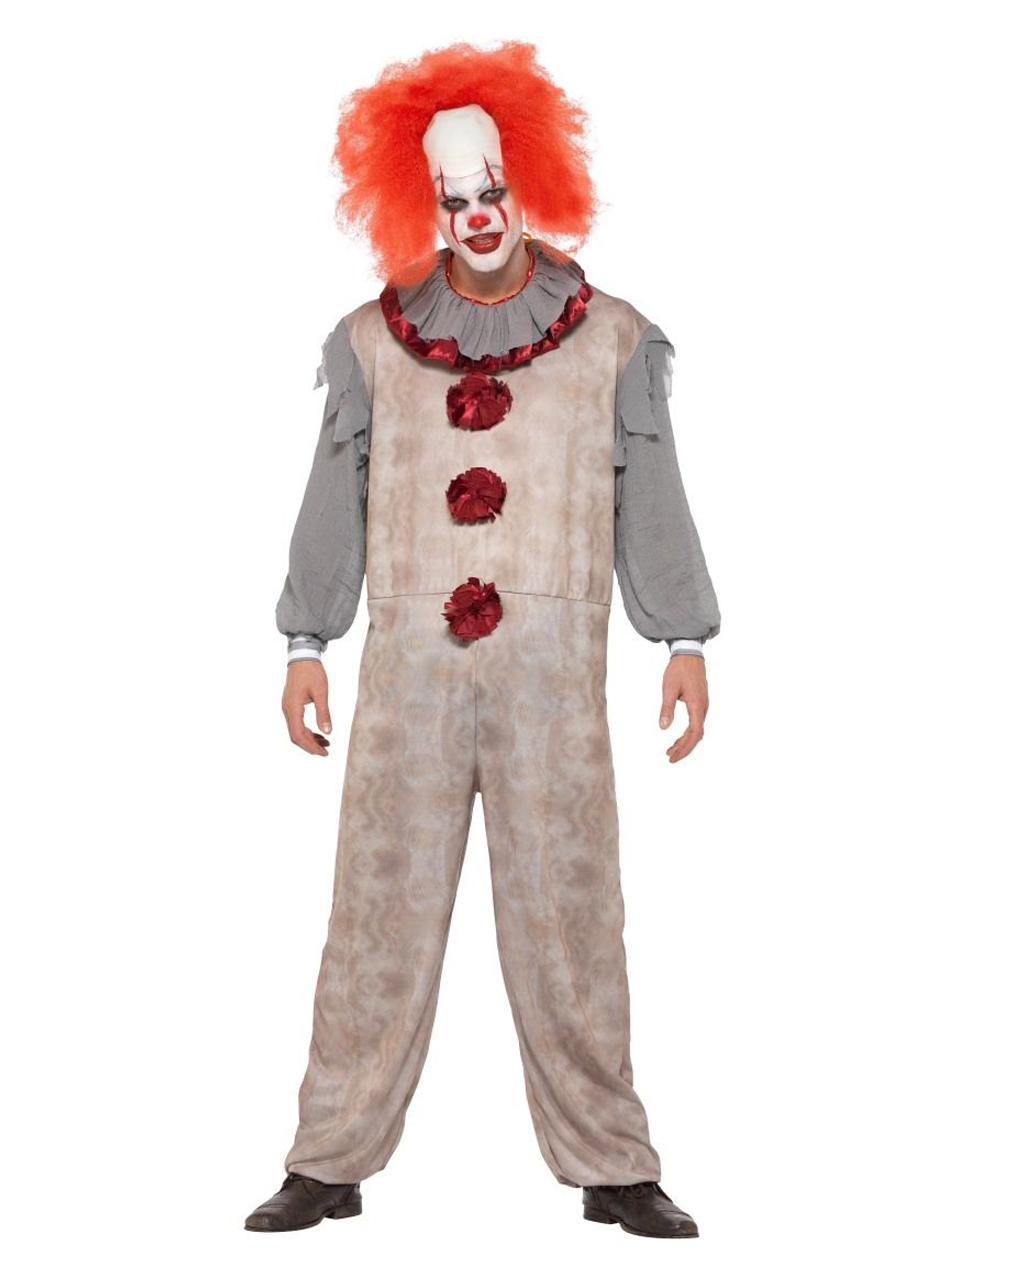 Halloween Clown.Vintage Horror Clown Costume